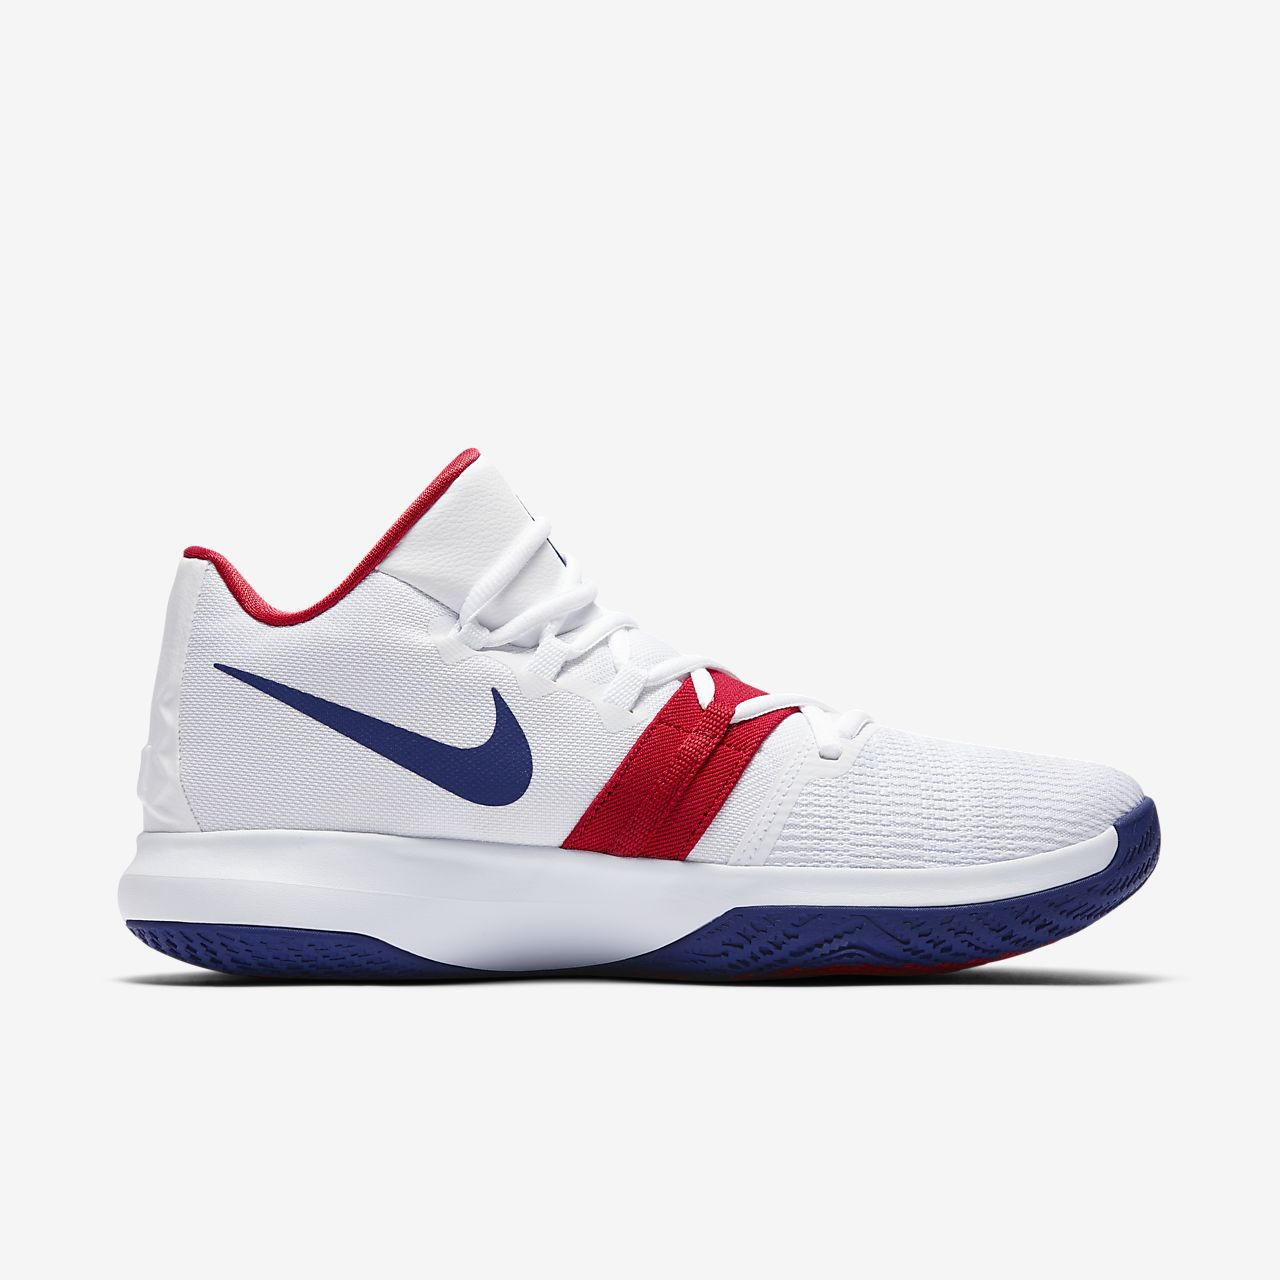 the best attitude dcd92 70c56 Low Resolution Kyrie Flytrap Basketball Shoe Kyrie Flytrap Basketball Shoe